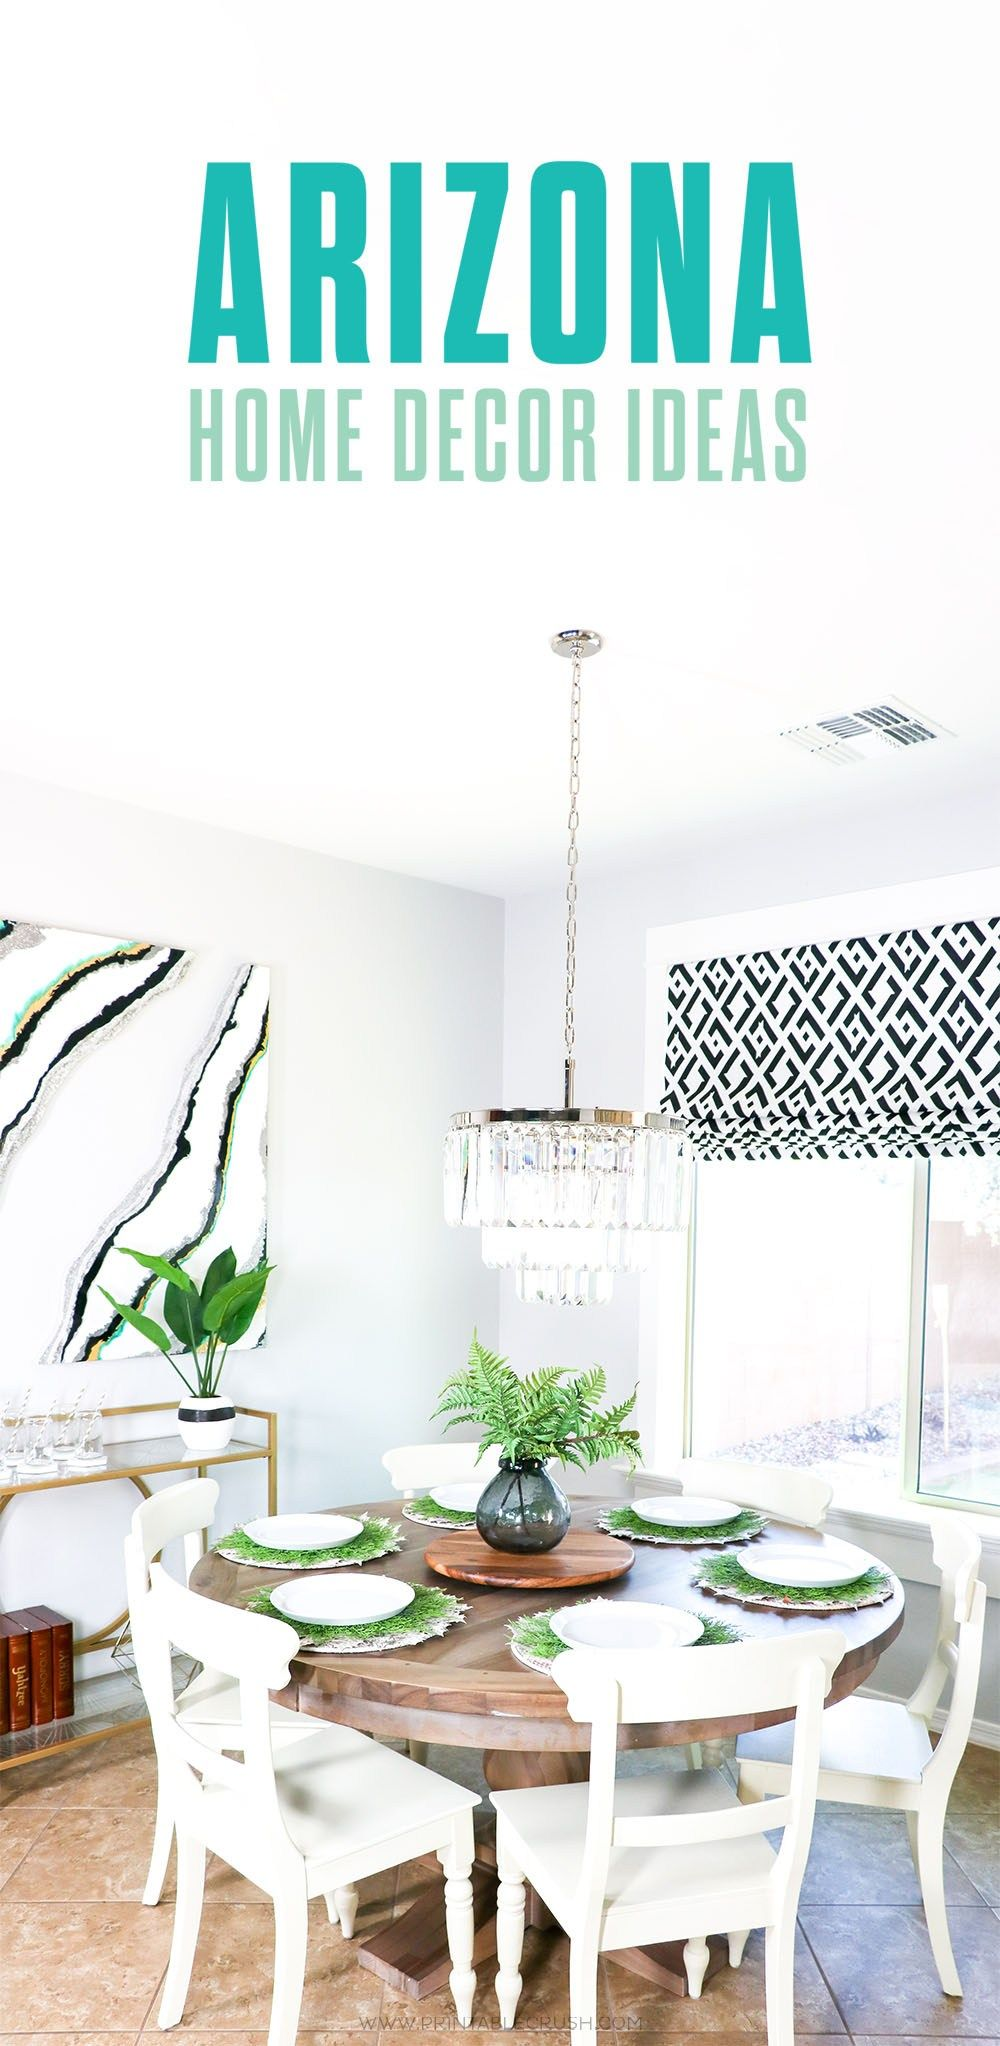 Your Arizona Home Decor Can Be Modern And Fit Into The Rustic Desert Landscape Check Out These Tips For Beautiful Ideas